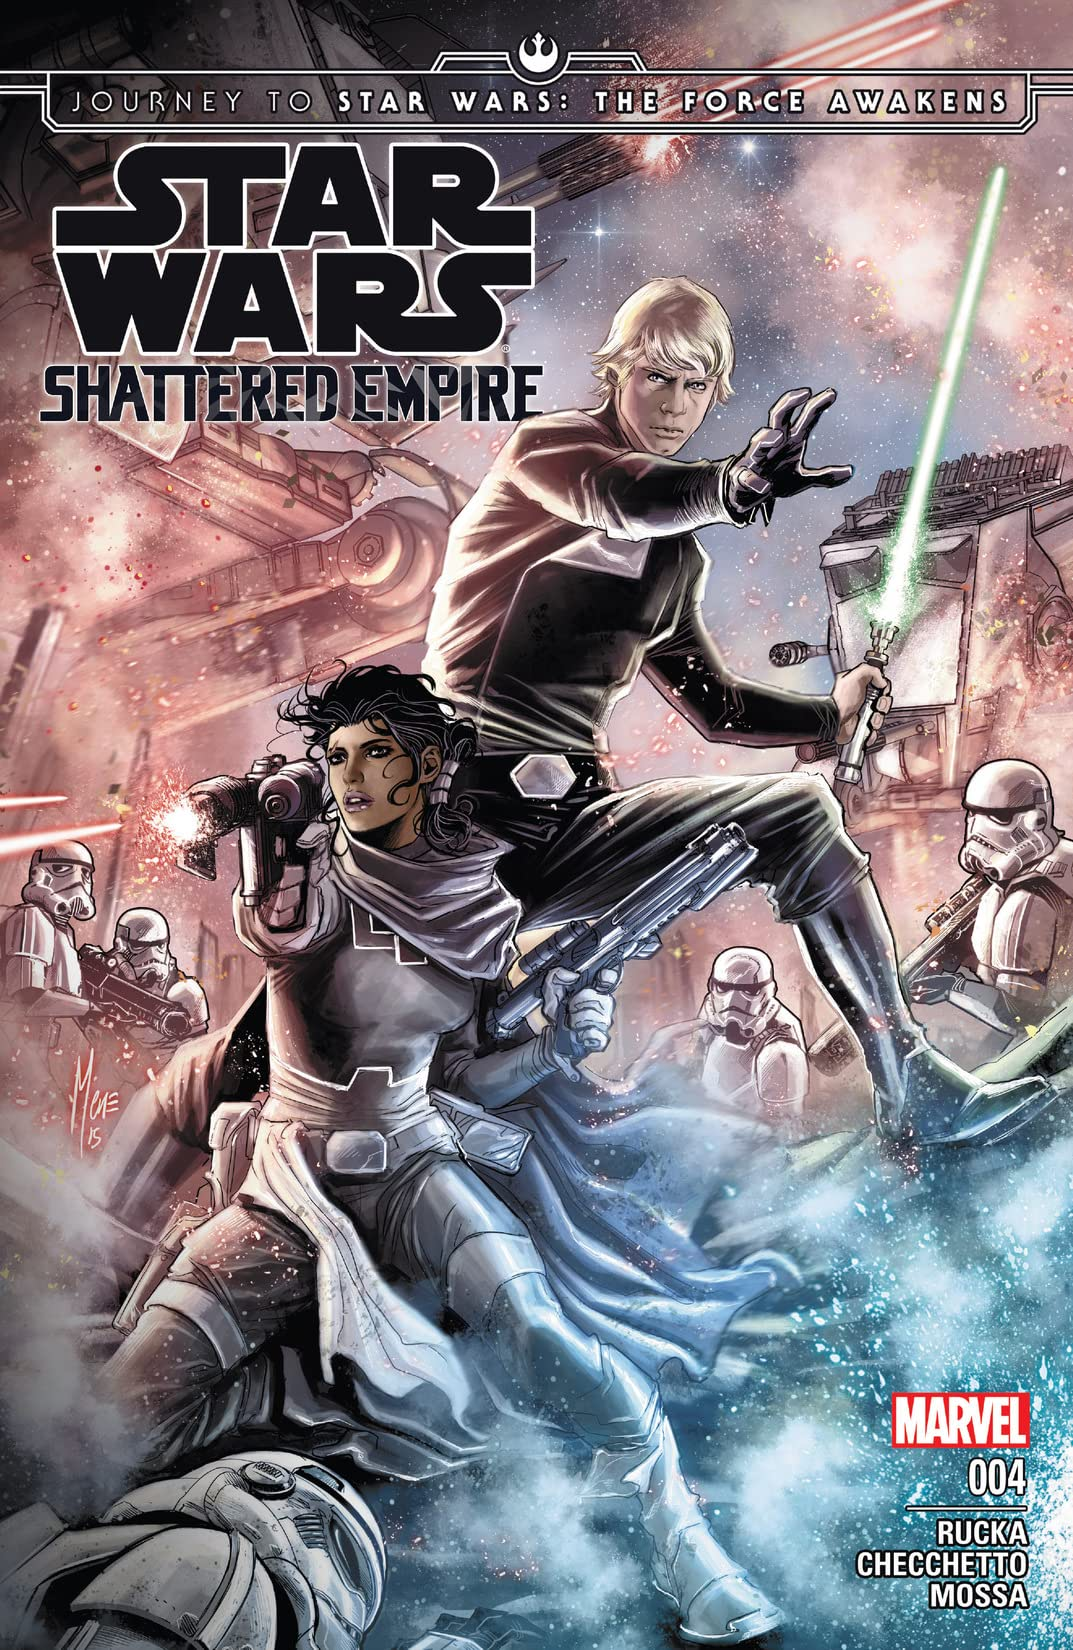 Journey to Star Wars: The Force Awakens - Shattered Empire #4 (of 4)